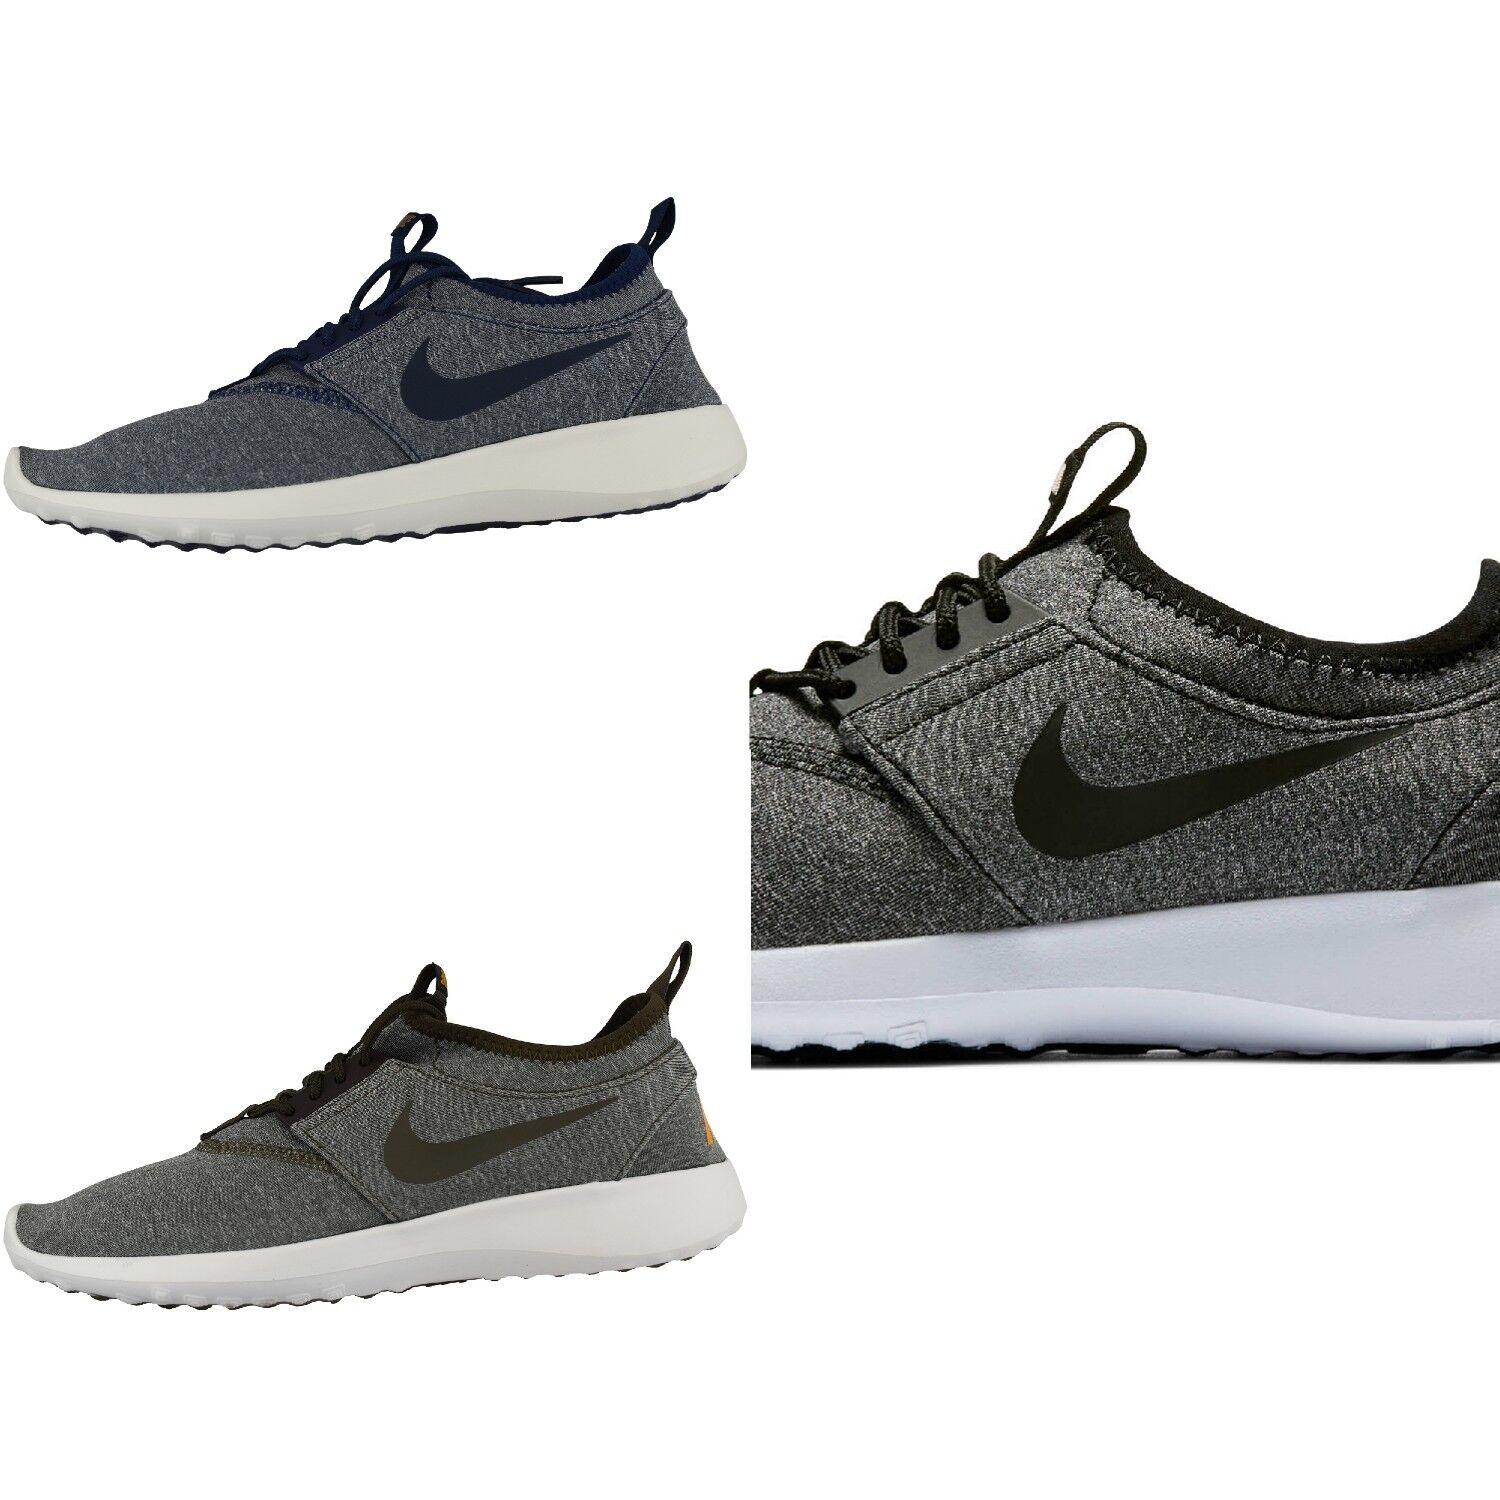 NIKE JUVENATE SE (Special Edition) damsnschuh Trainers Trainers Trainers